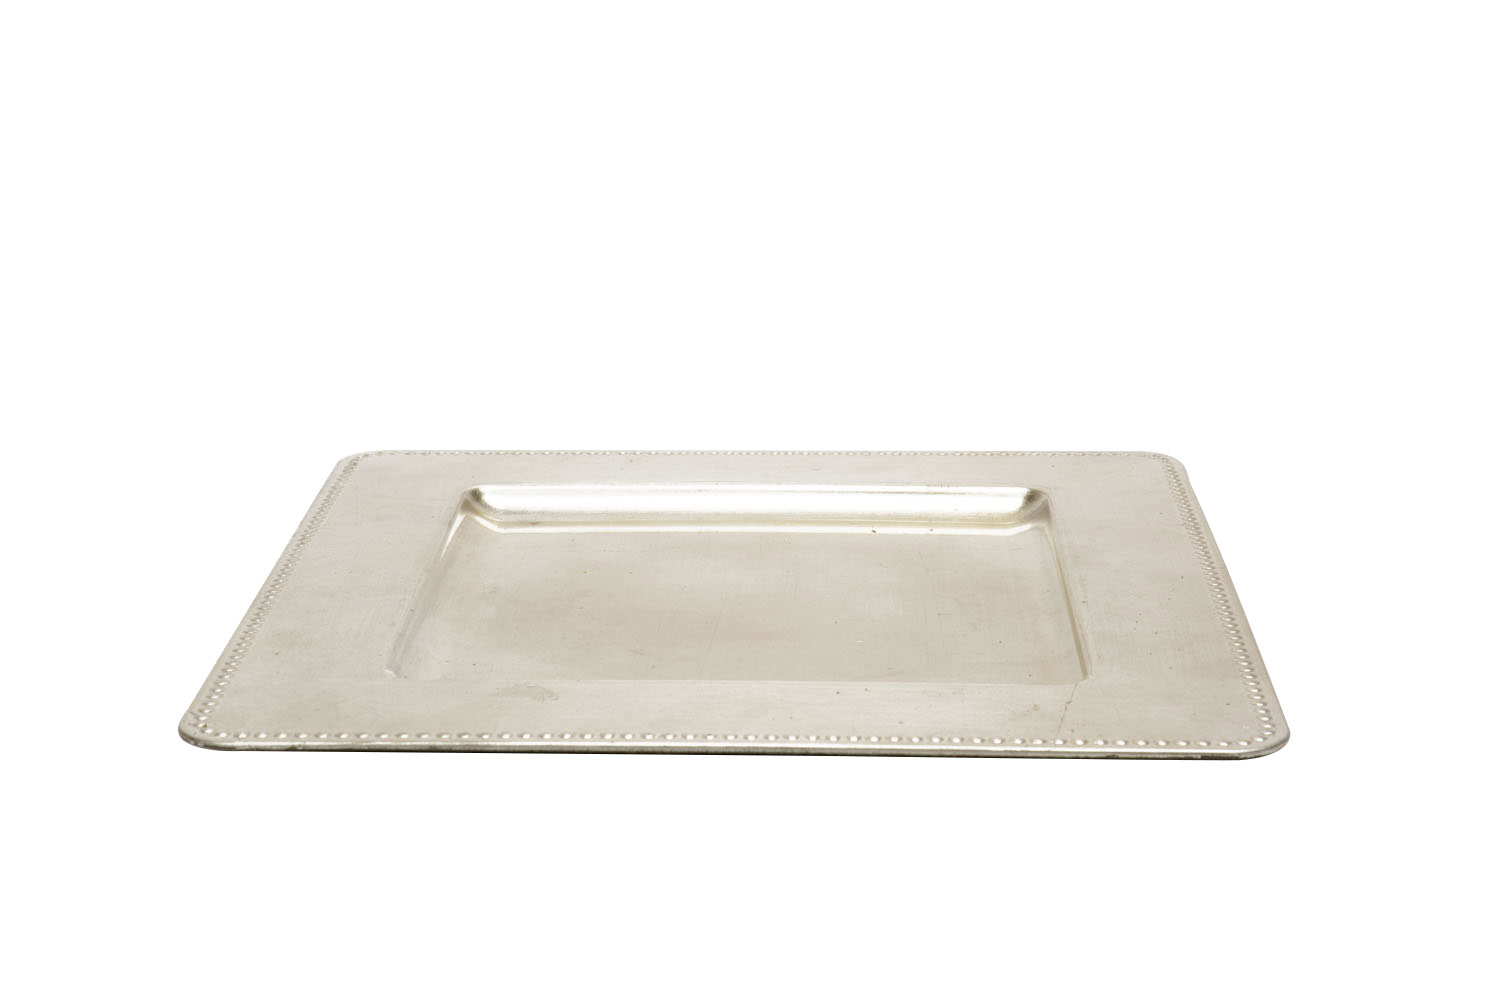 Square Champagne Charger 1.25